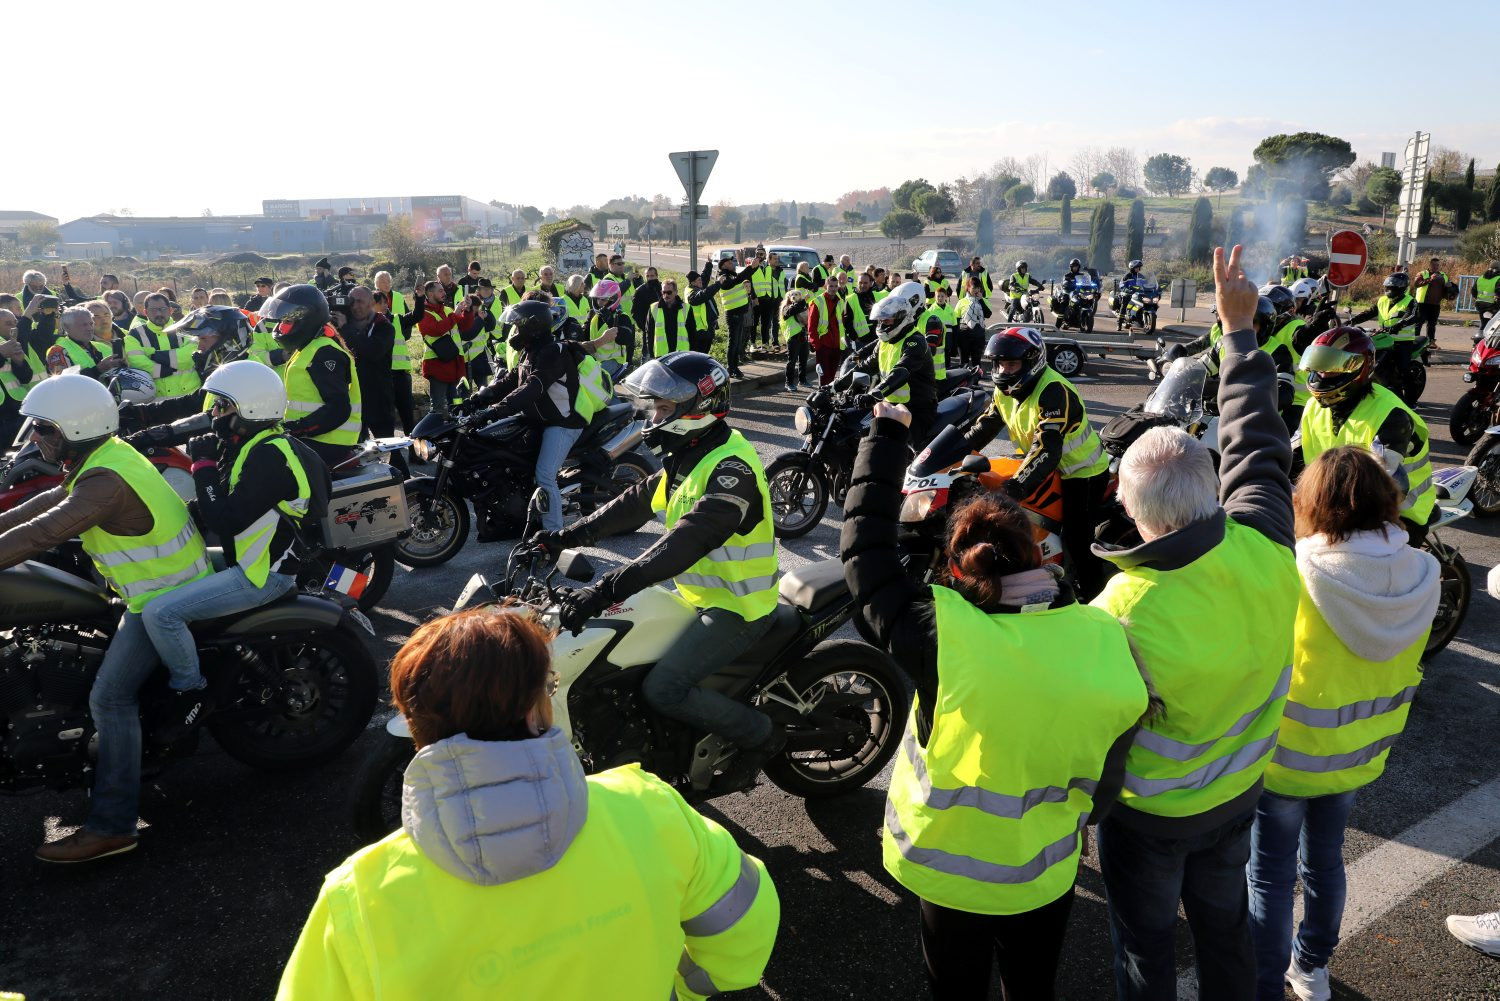 Cavaillon Avignon Bus Trafic En Direct Gilets Jaunes Le Point Sur Les Blocages Ce